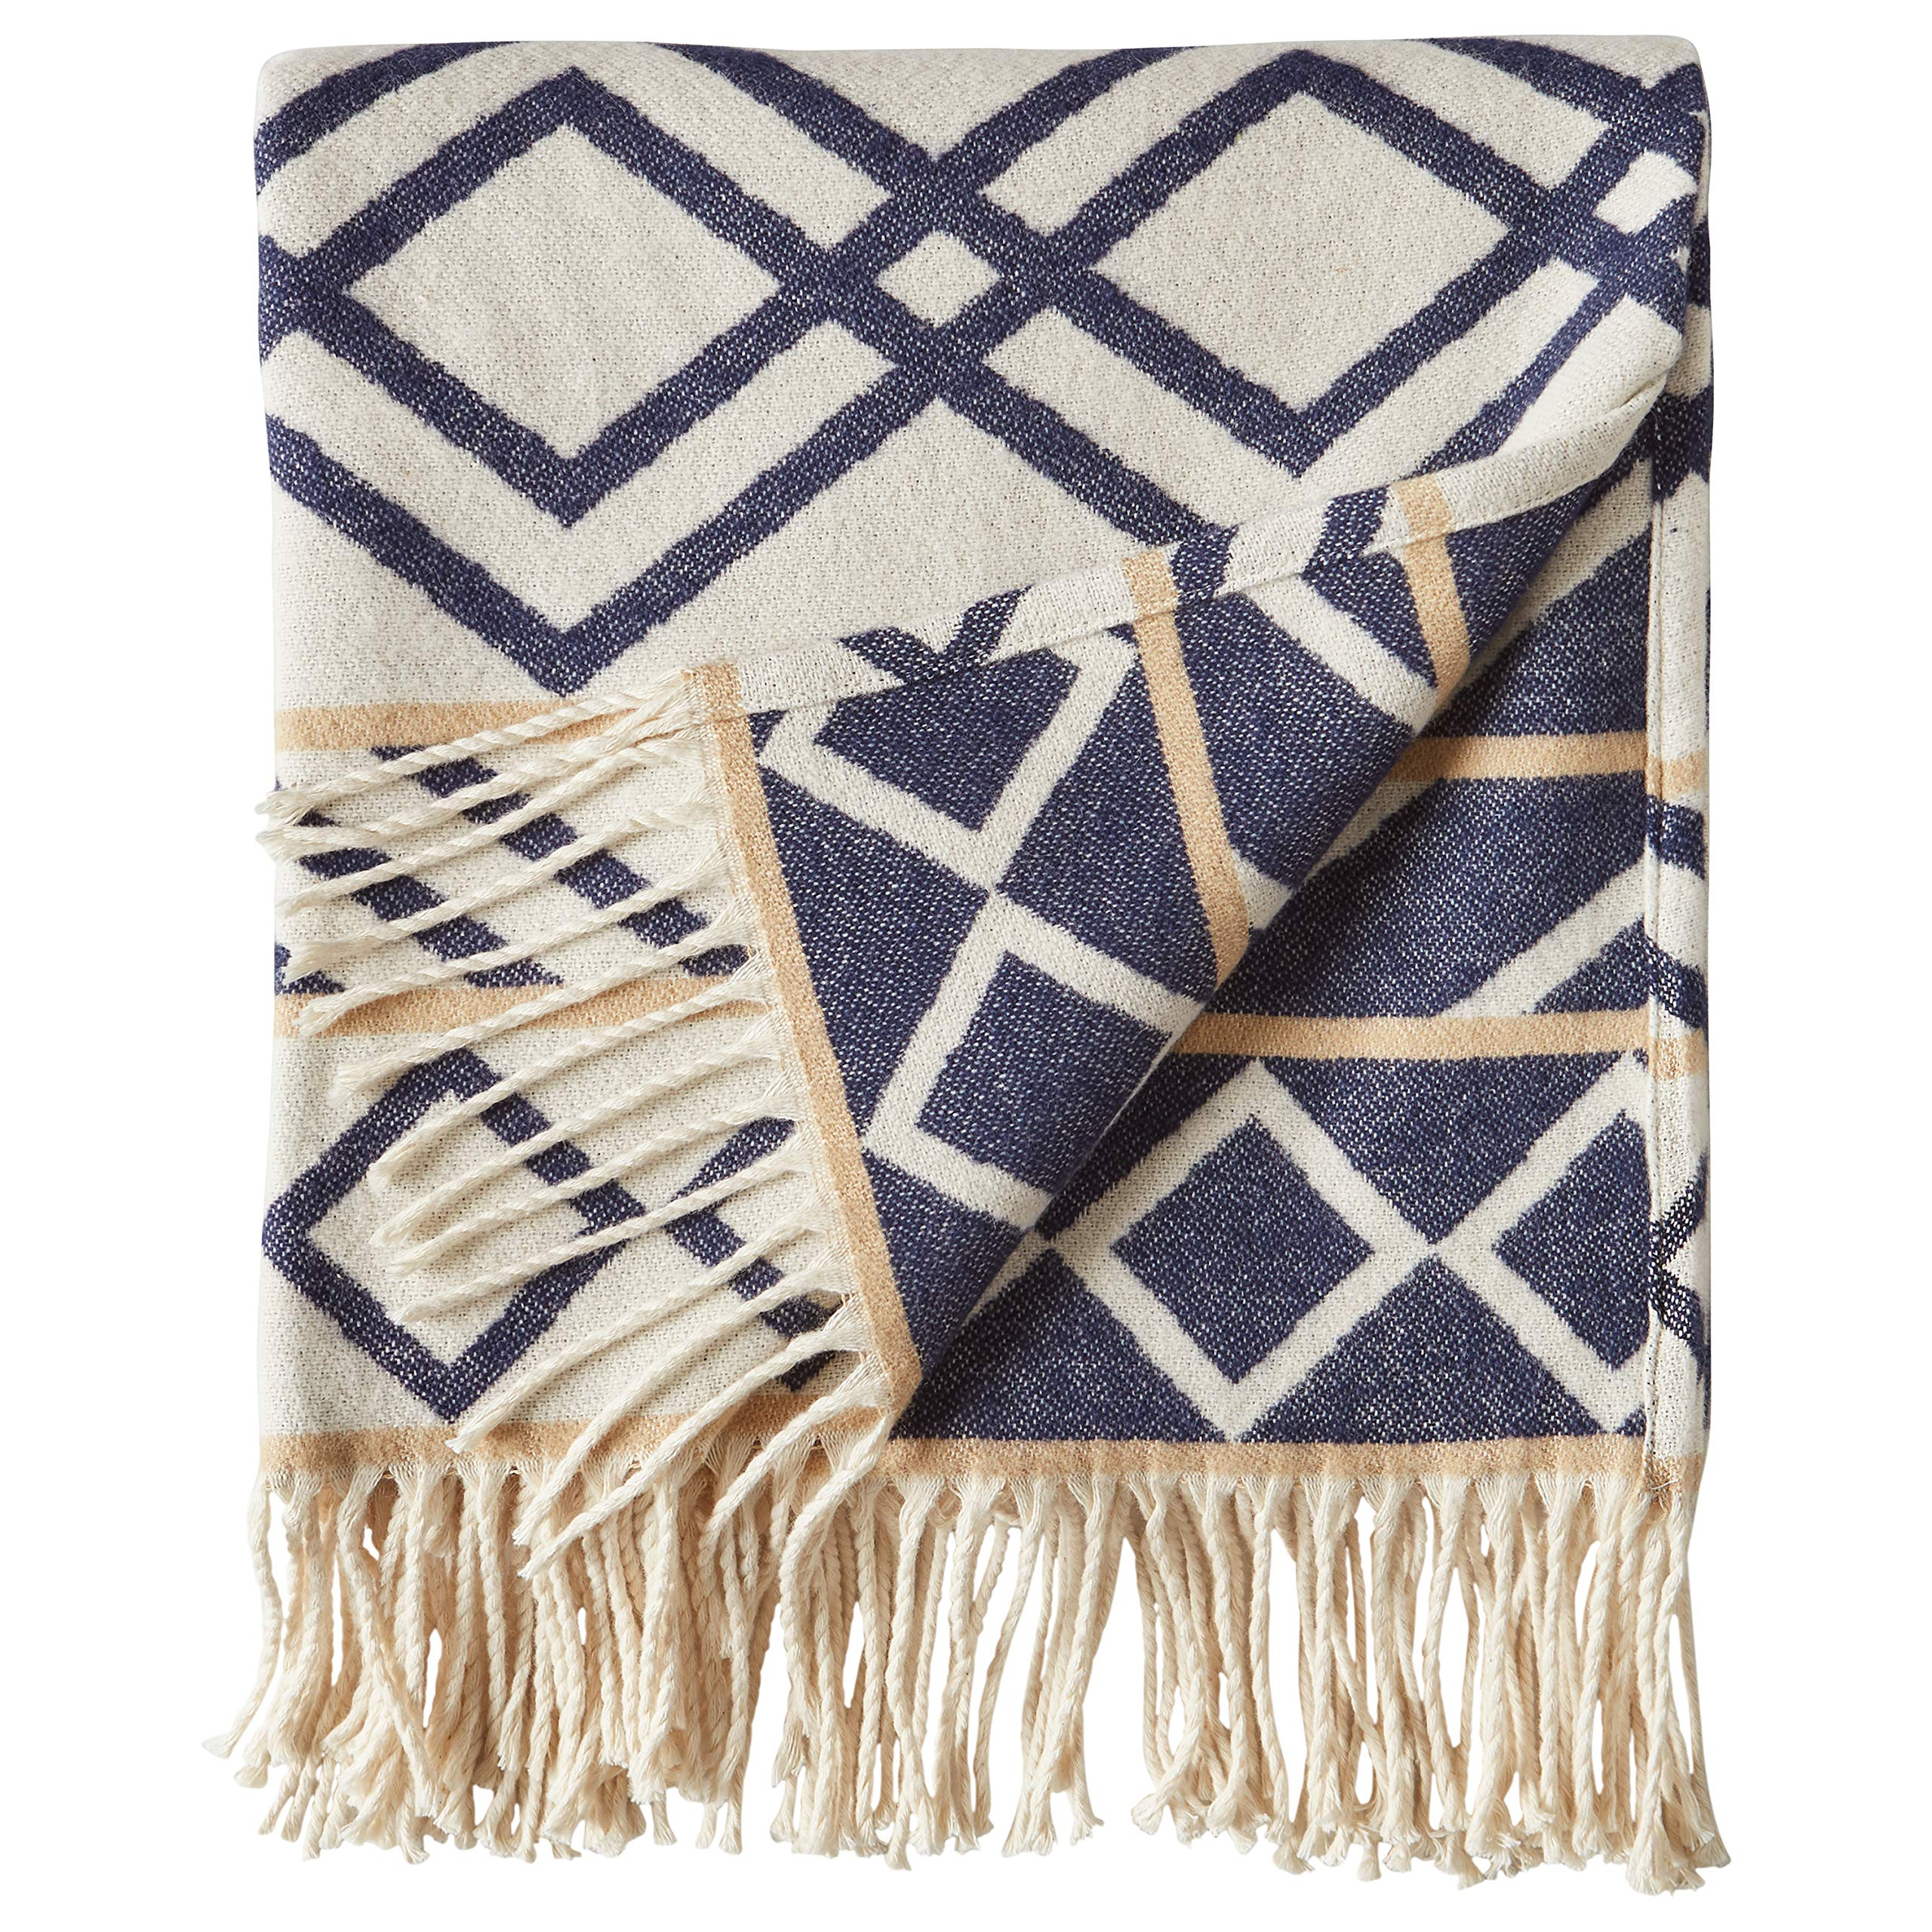 Rivet Global Inspired Geometric Throw Blanket, Soft and Stylish, 50'' x 60'', Navy and Natural by Rivet